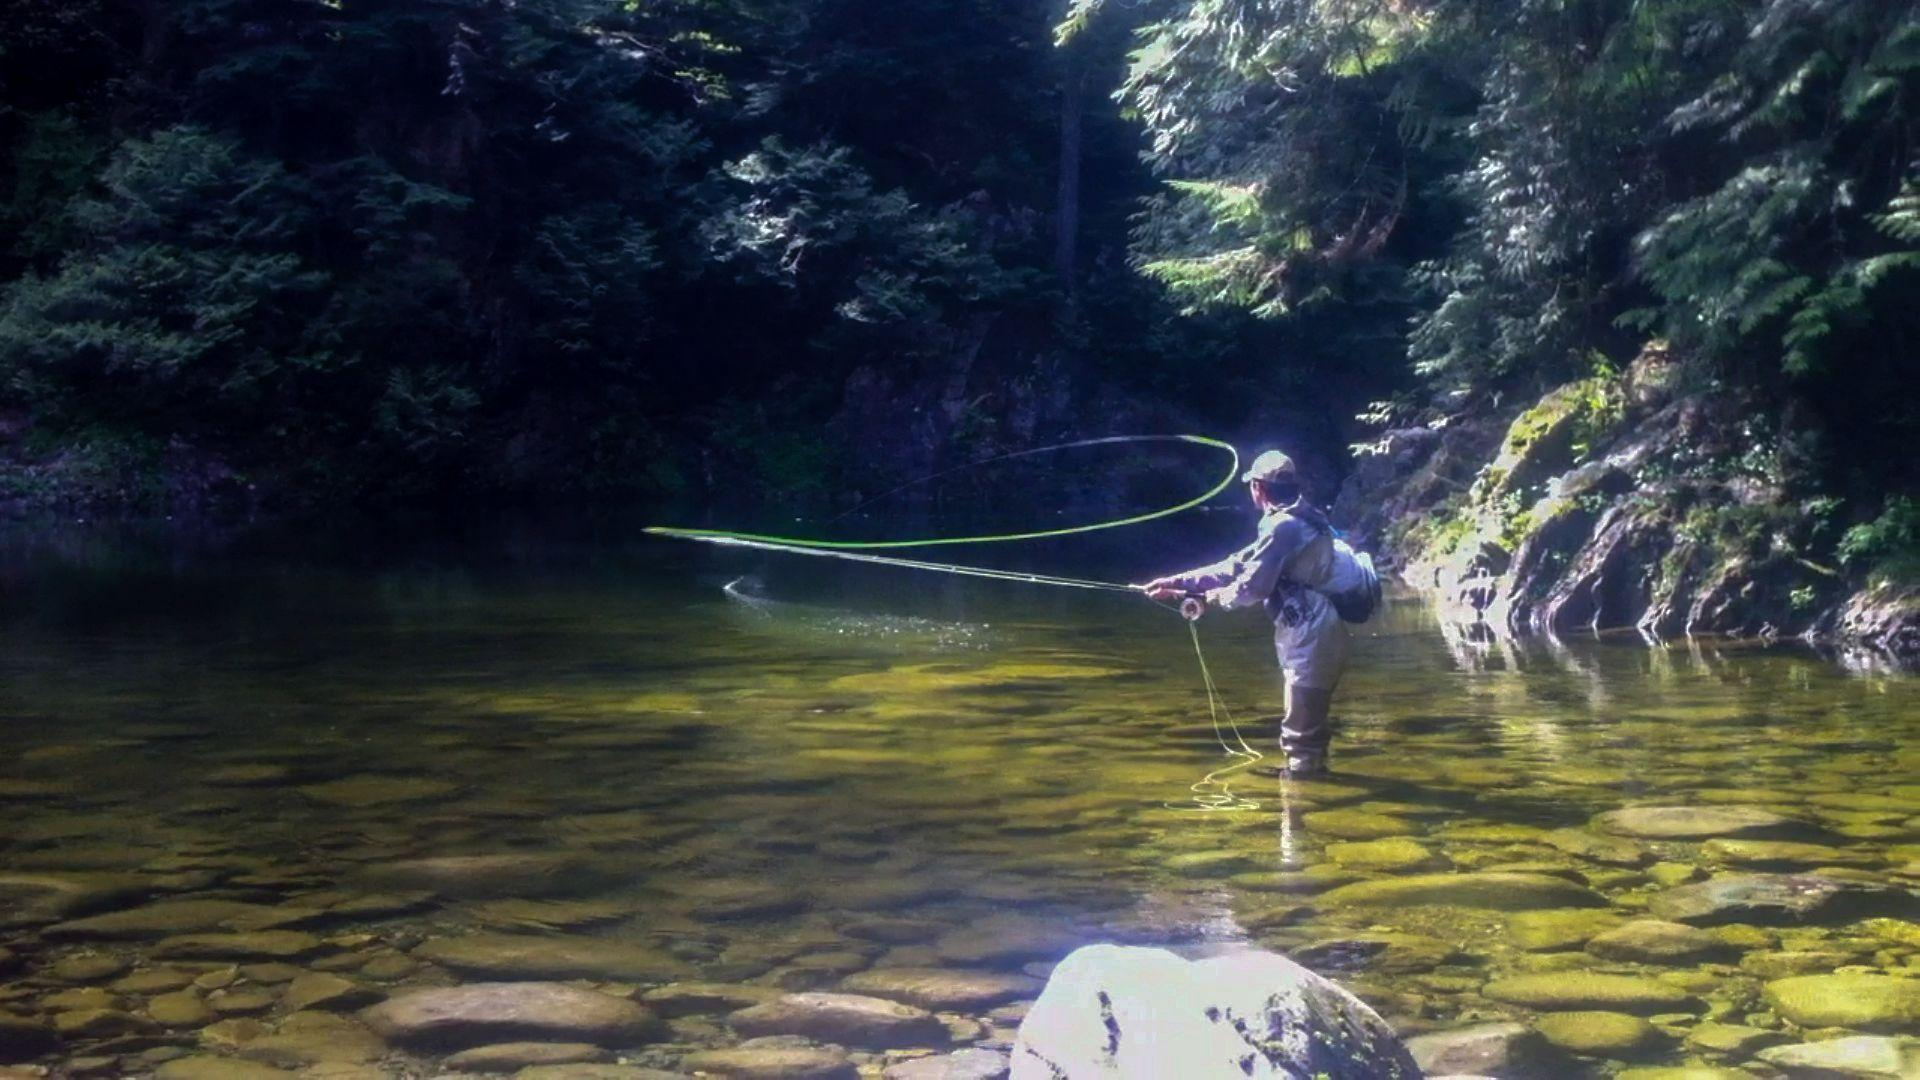 Wallpapers For > Fly Fishing River Wallpapers